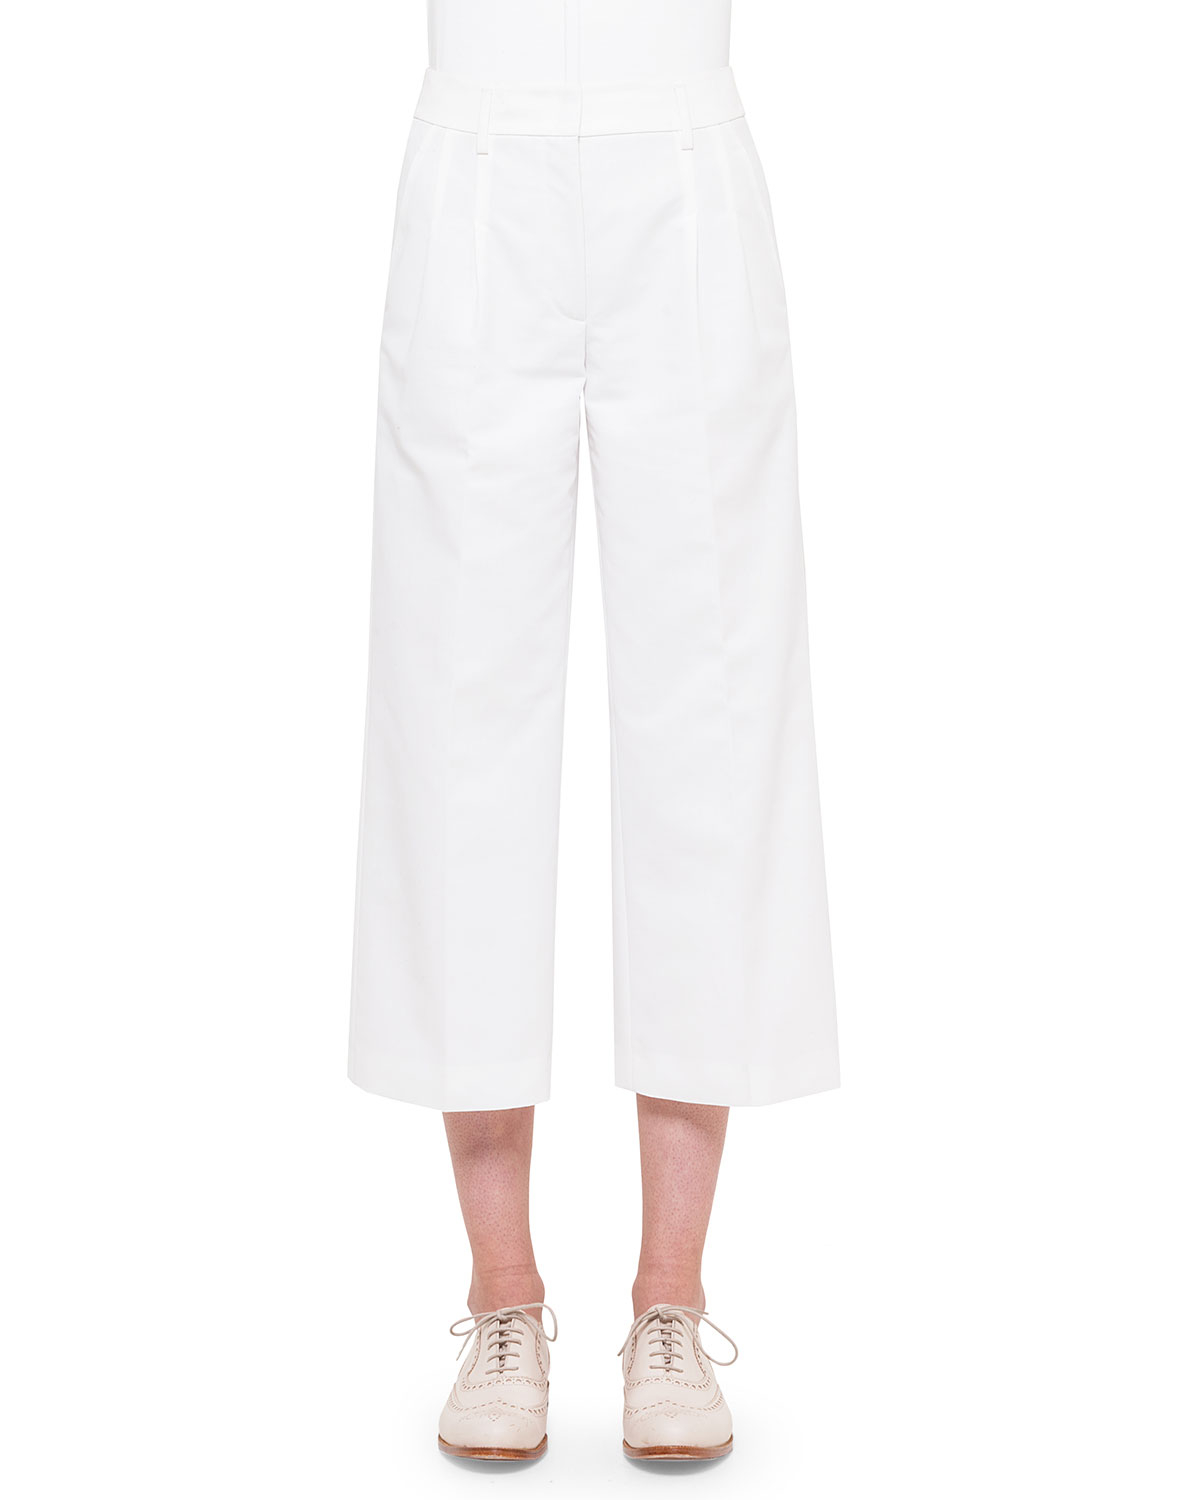 Flowy Wide Leg Pants: Discover chic comfort in our wide leg pants with an all-around elastic waistband and slant pockets. 27